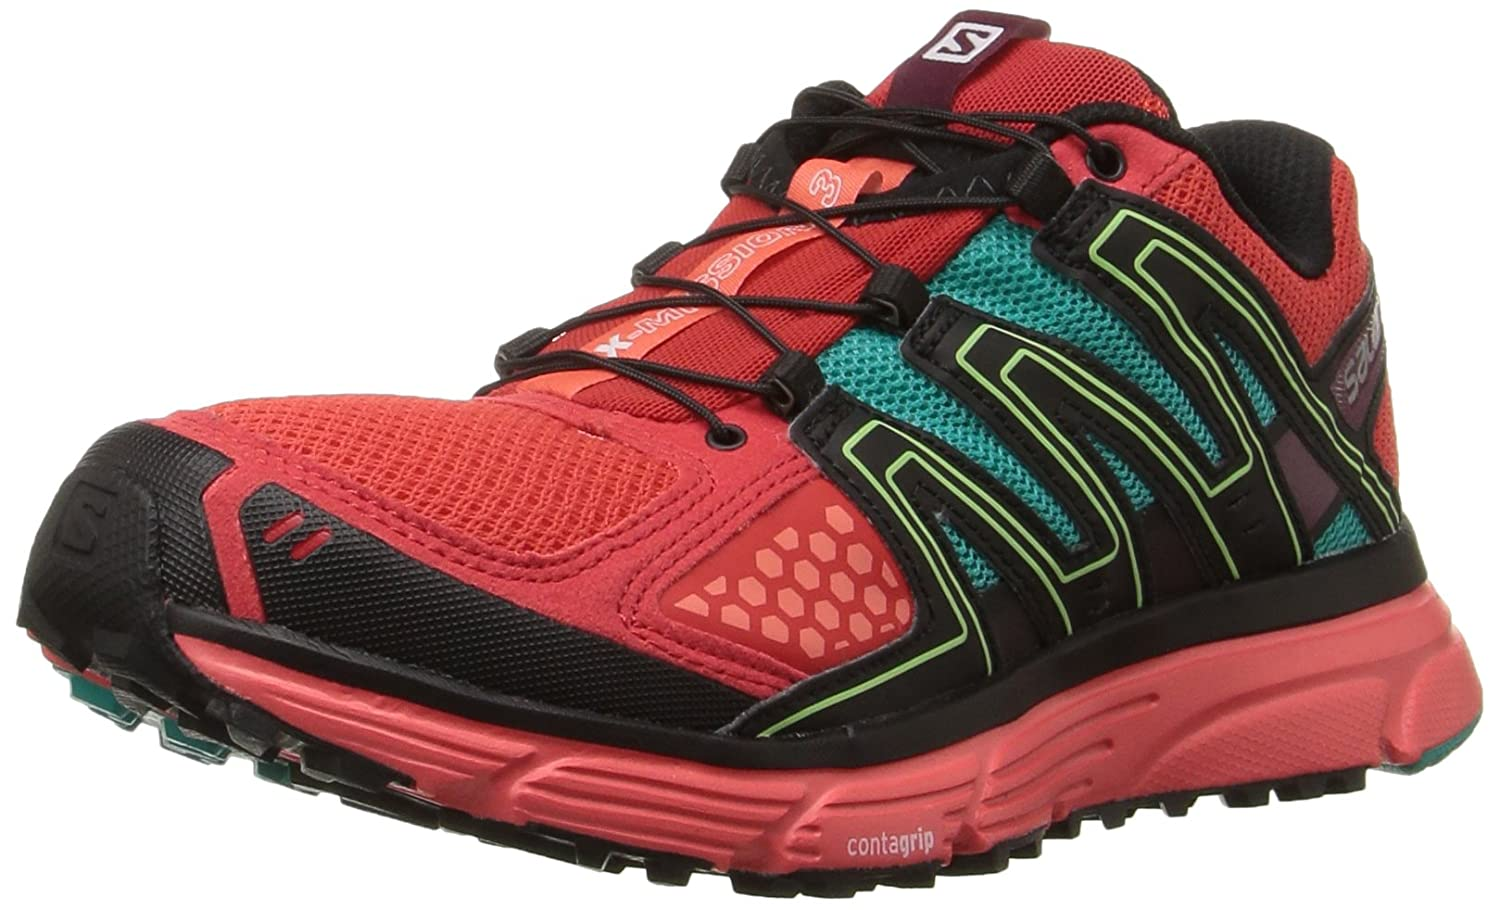 Salomon Women's X-Mission 3 US|Infrared/Coral W-w B017UT1XX6 5 B(M) US|Infrared/Coral 3 Punch/Teal Blue Fabric 395c22